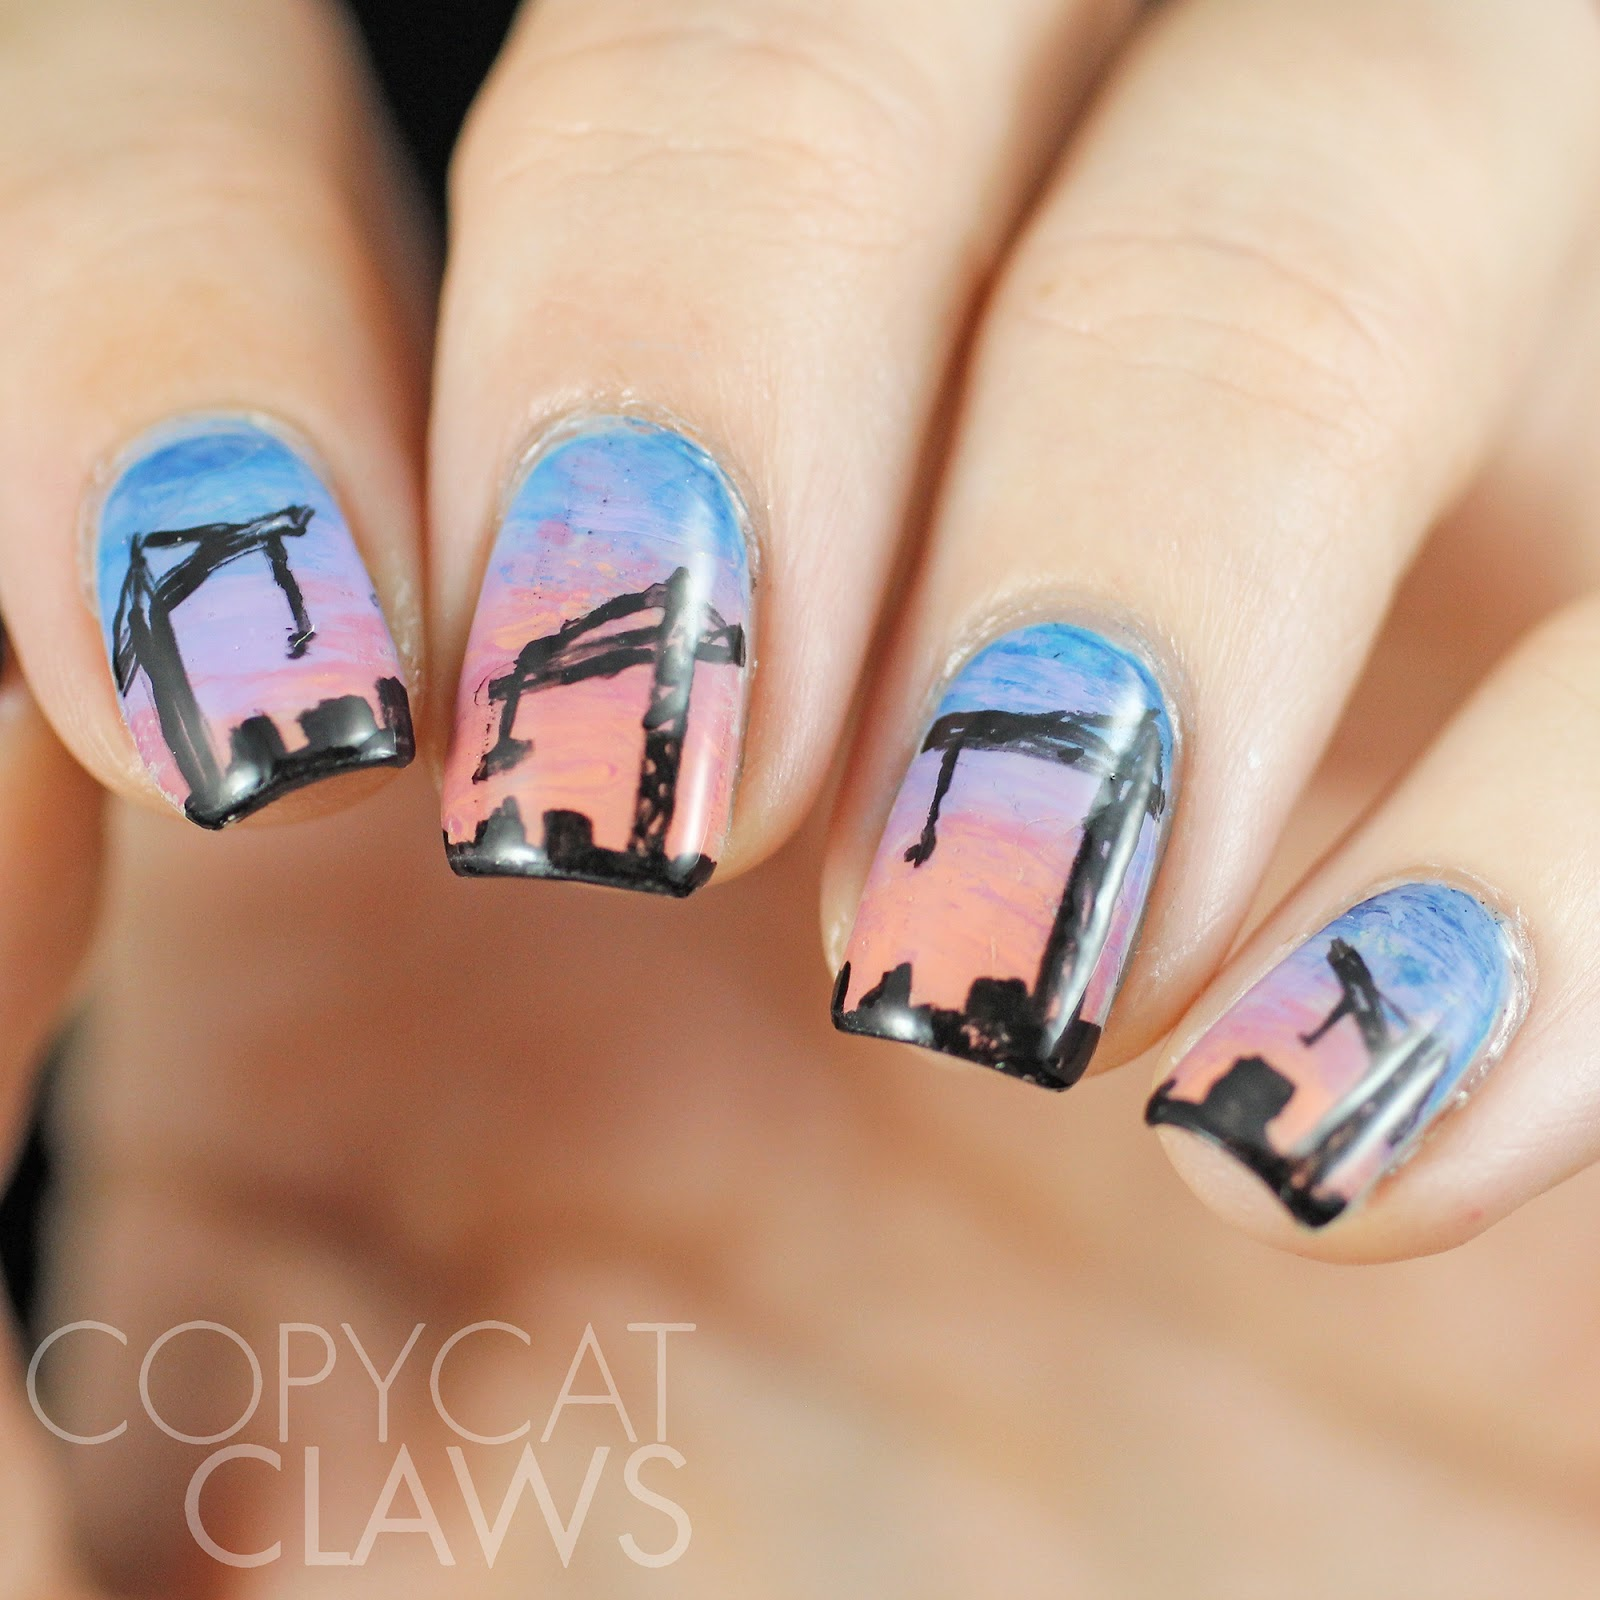 Copycat claws construction crane nail art prinsesfo Image collections